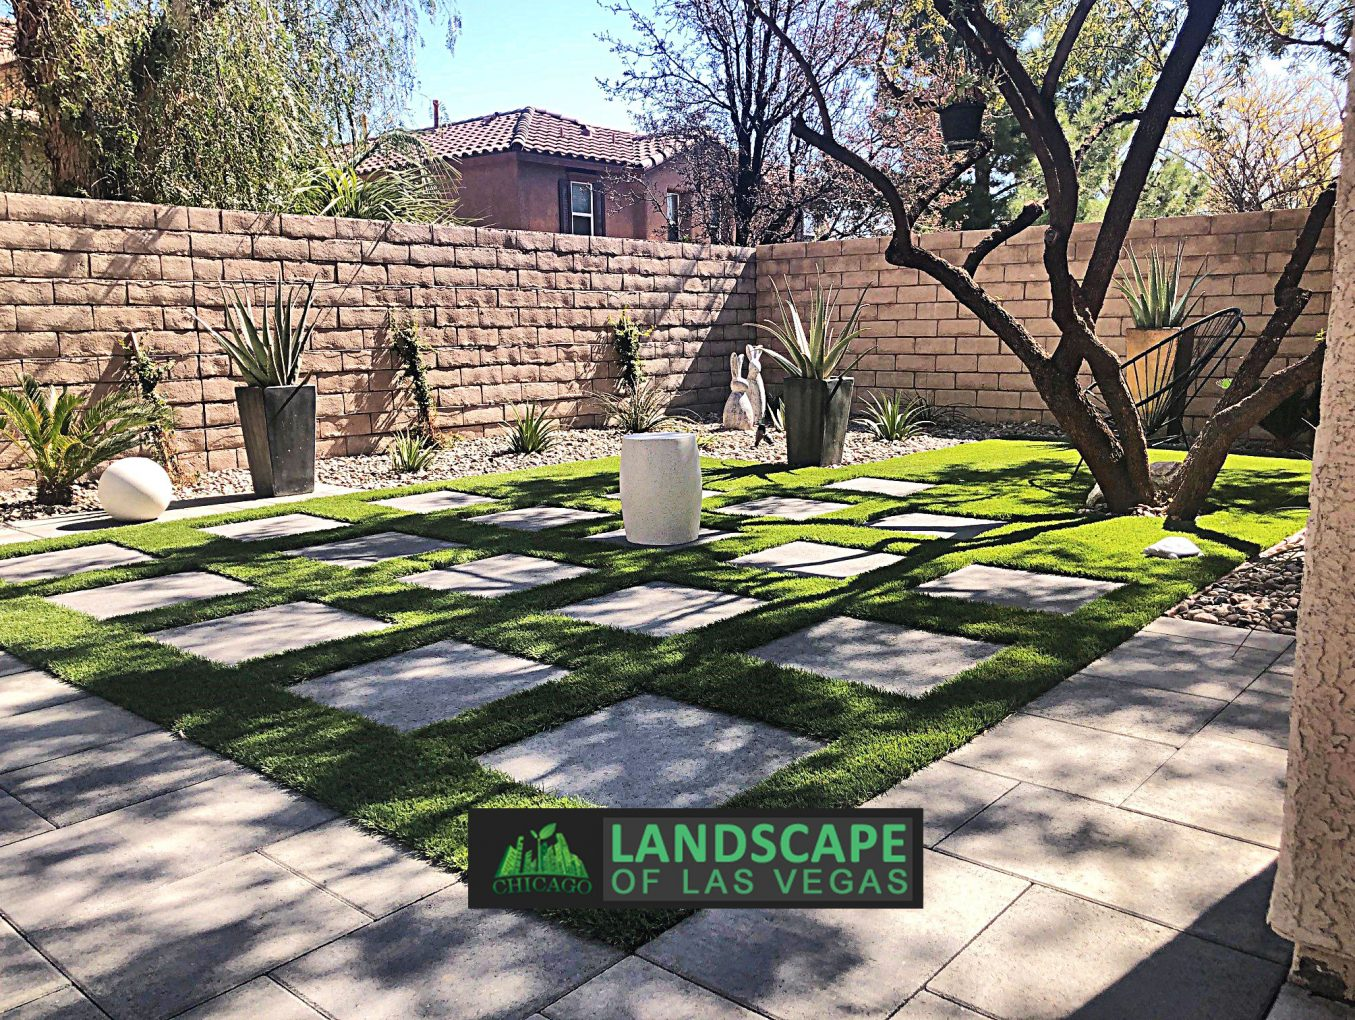 Las Vegas Landscape Redesign Project - Before & After  Photos